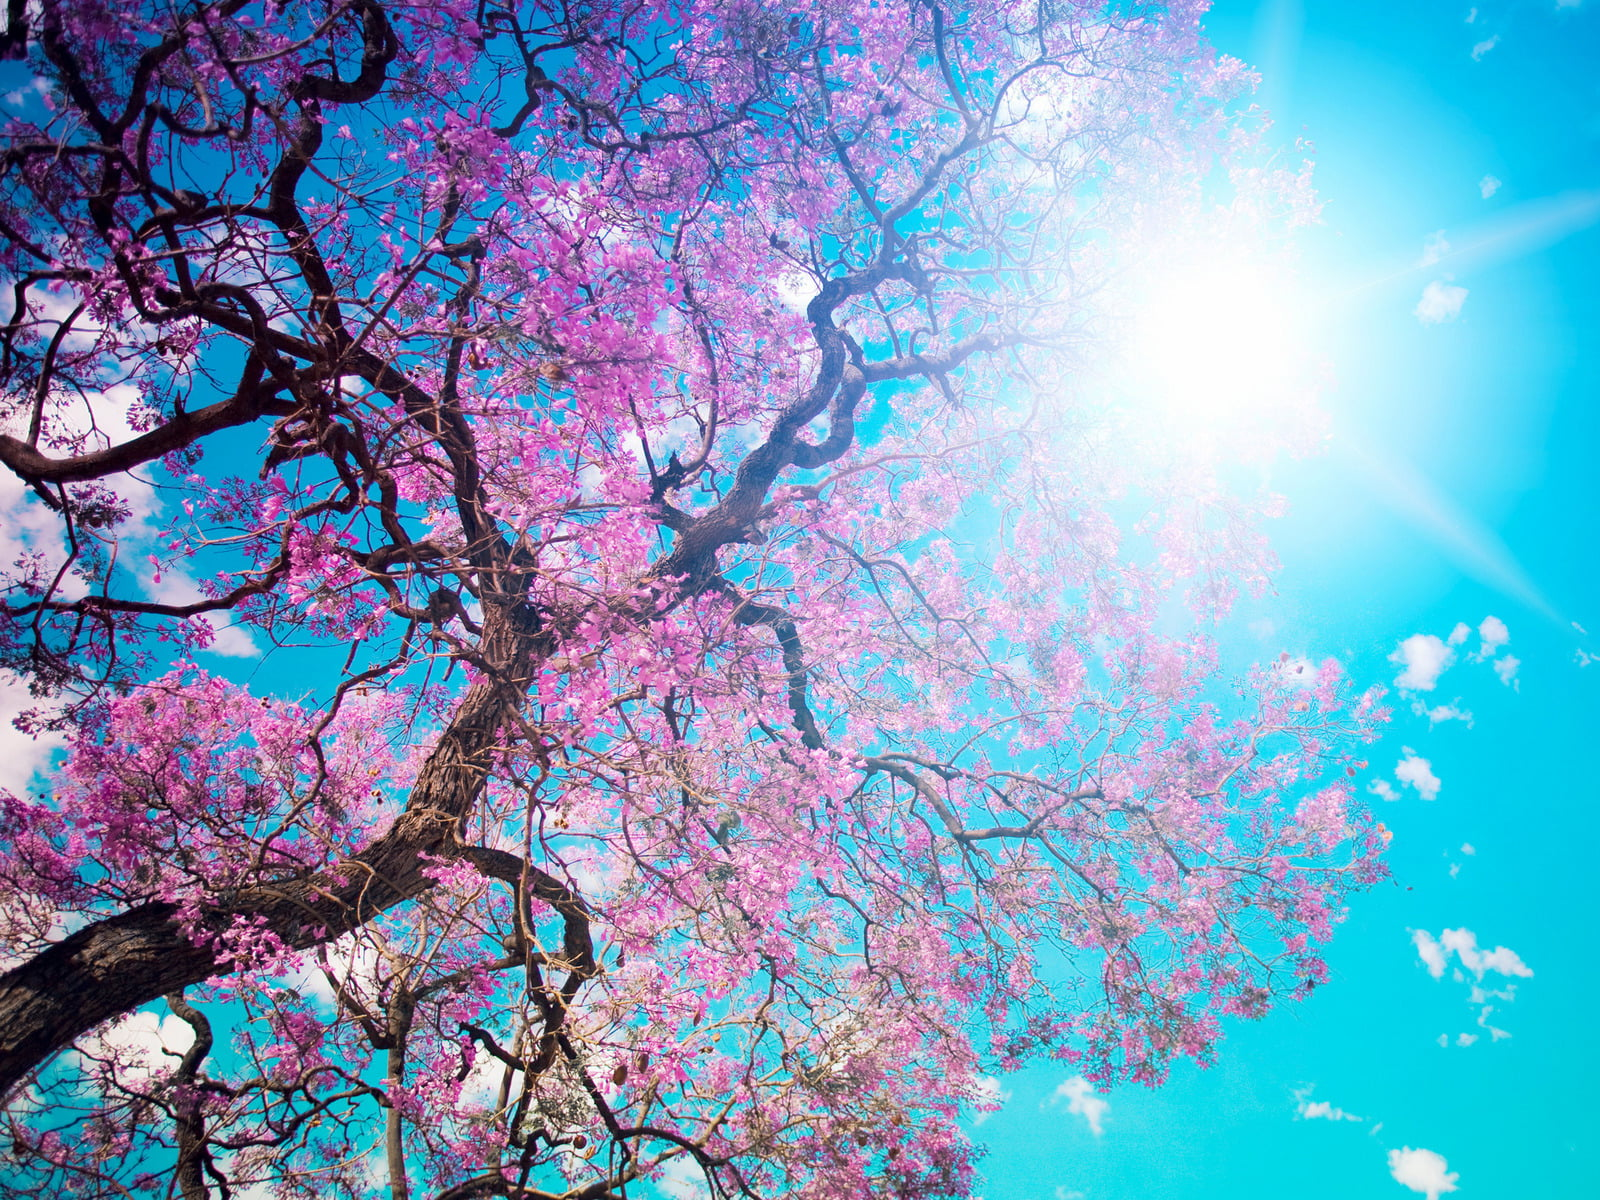 Worms eyeview photography of pink cherry blossoms HD wallpaper 1600x1200